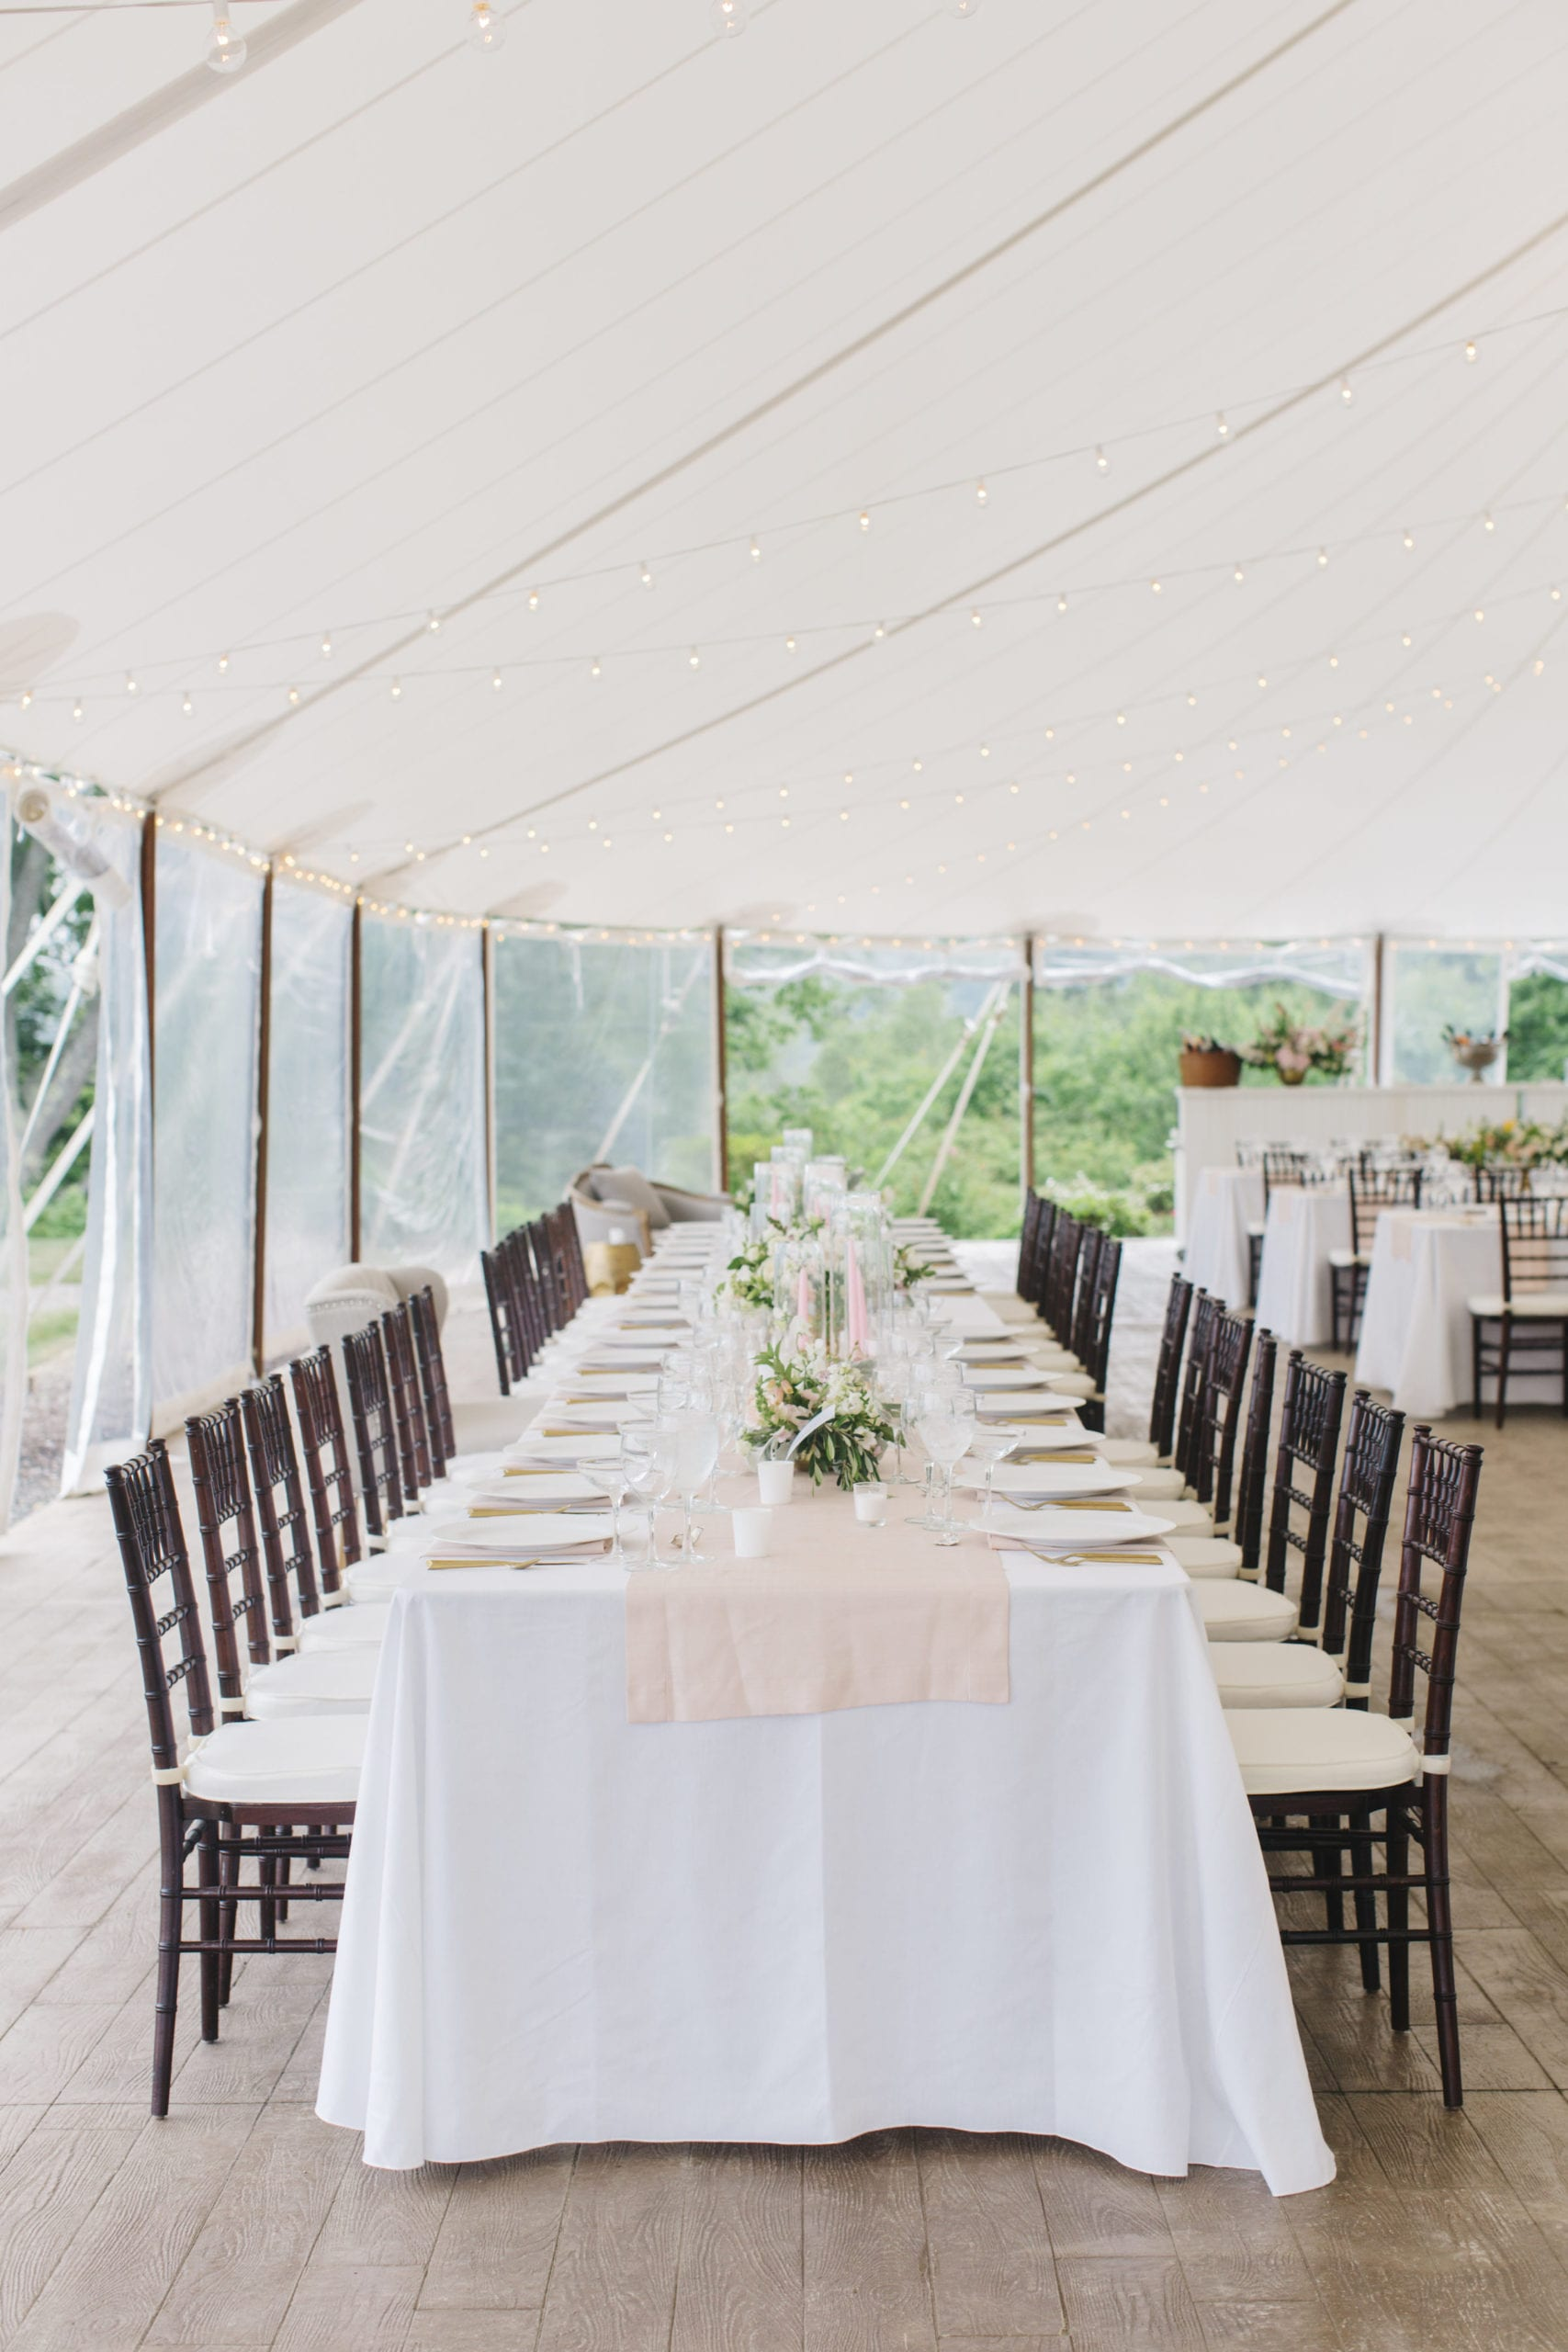 What Size Table Linen Should I Order?